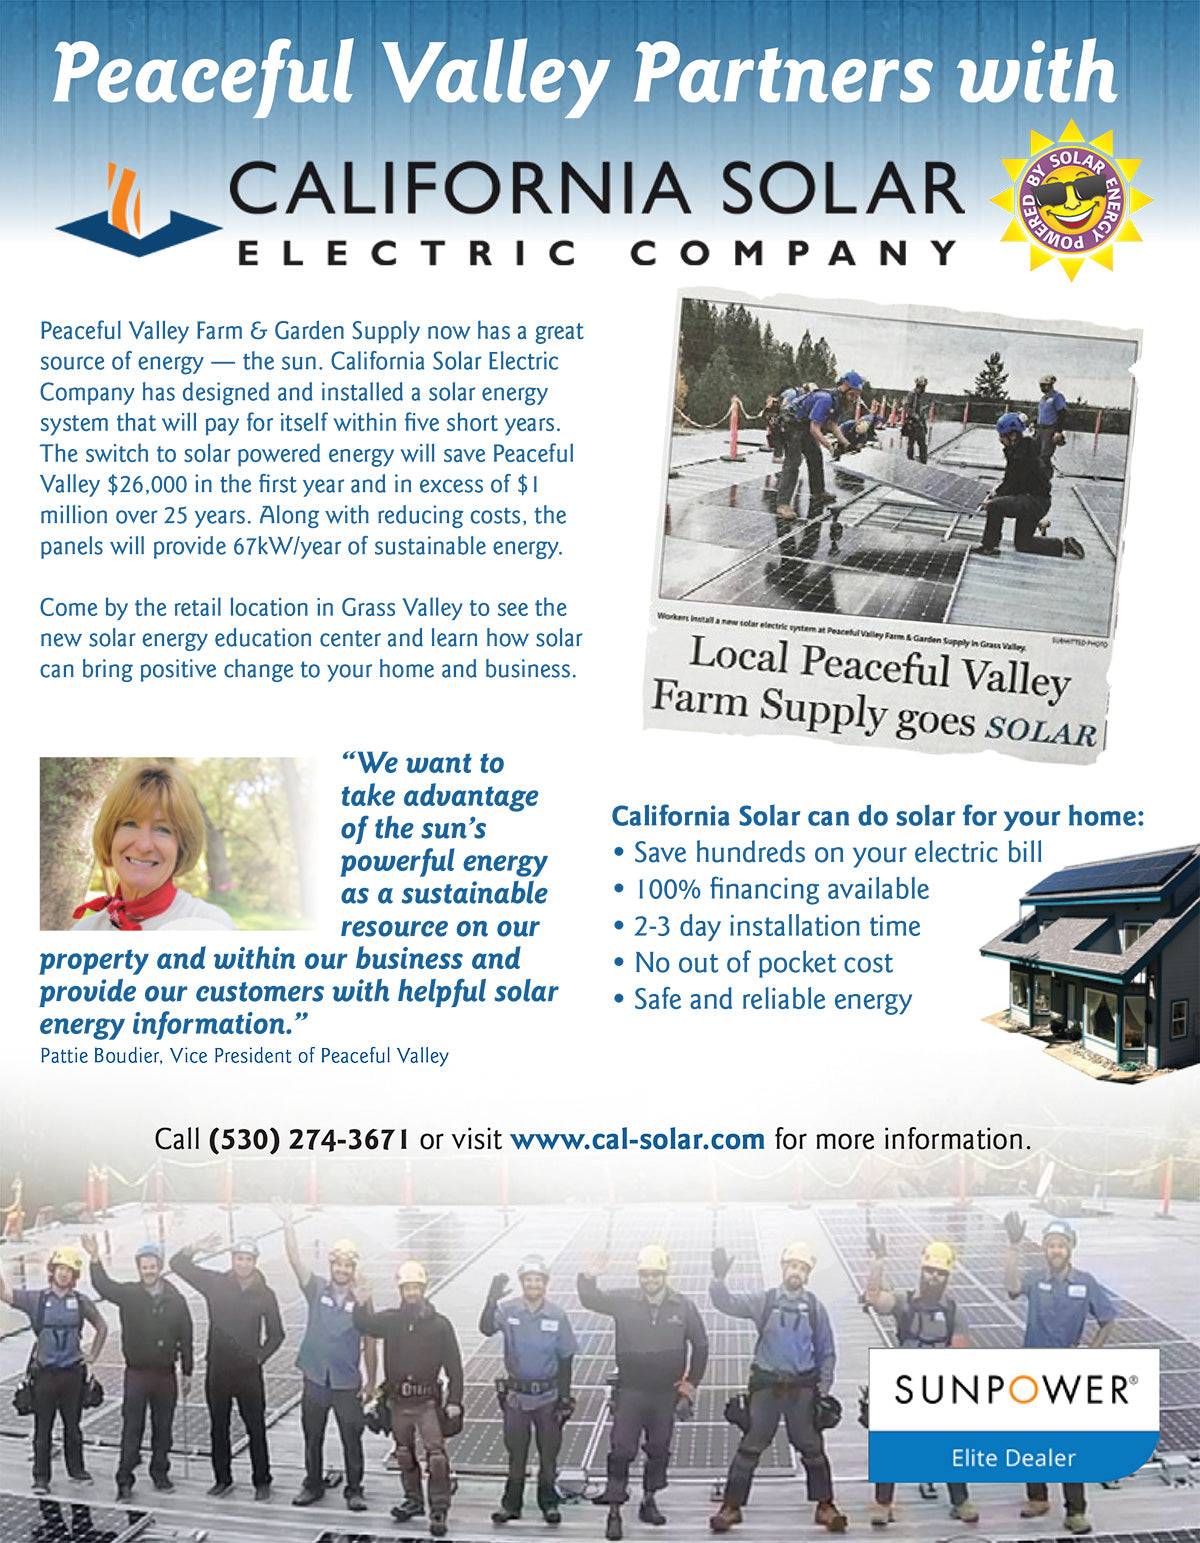 Peaceful Valley has Partnered with California Solar Electric Company